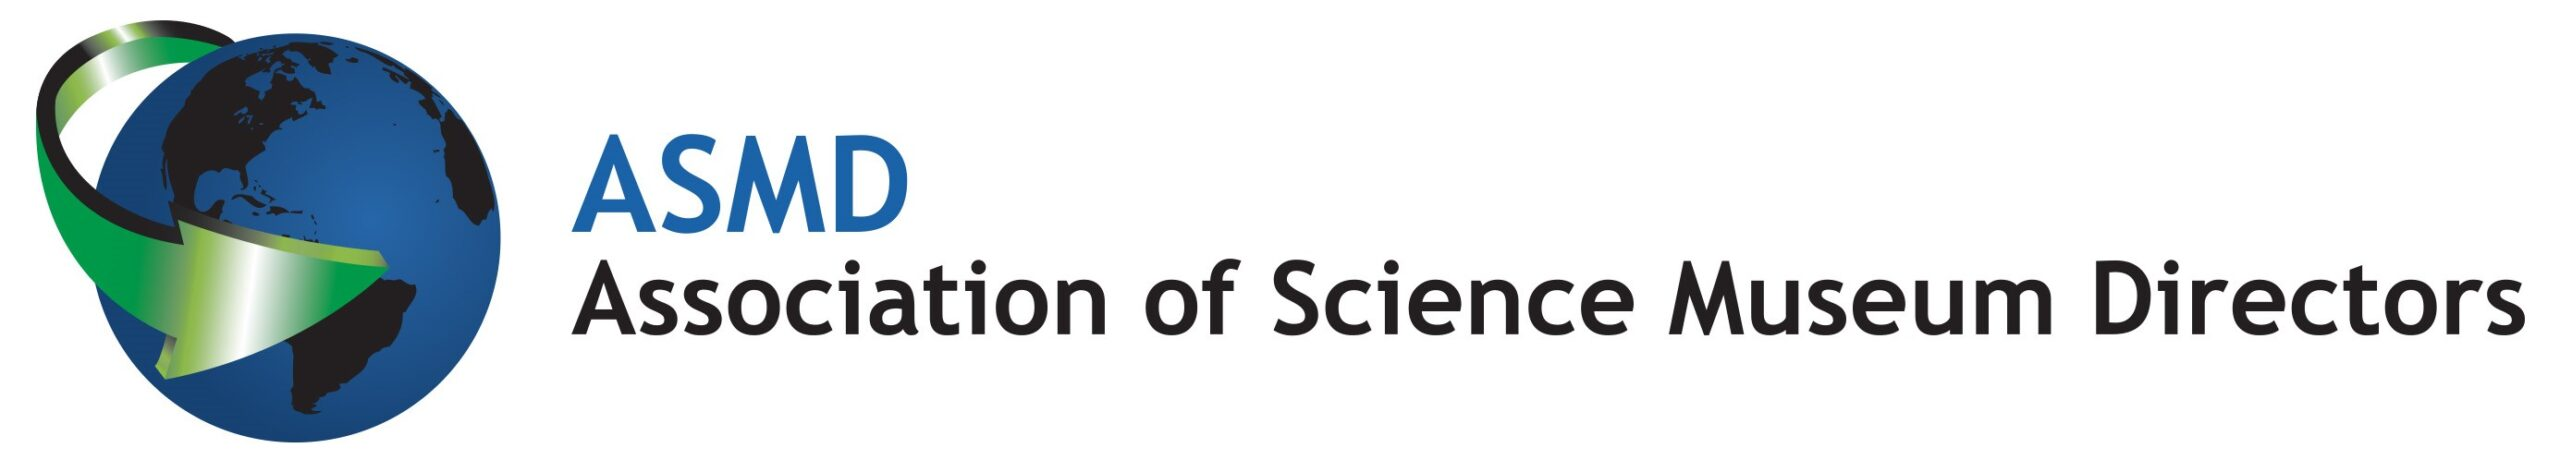 logo: Association of Science Museum Directors